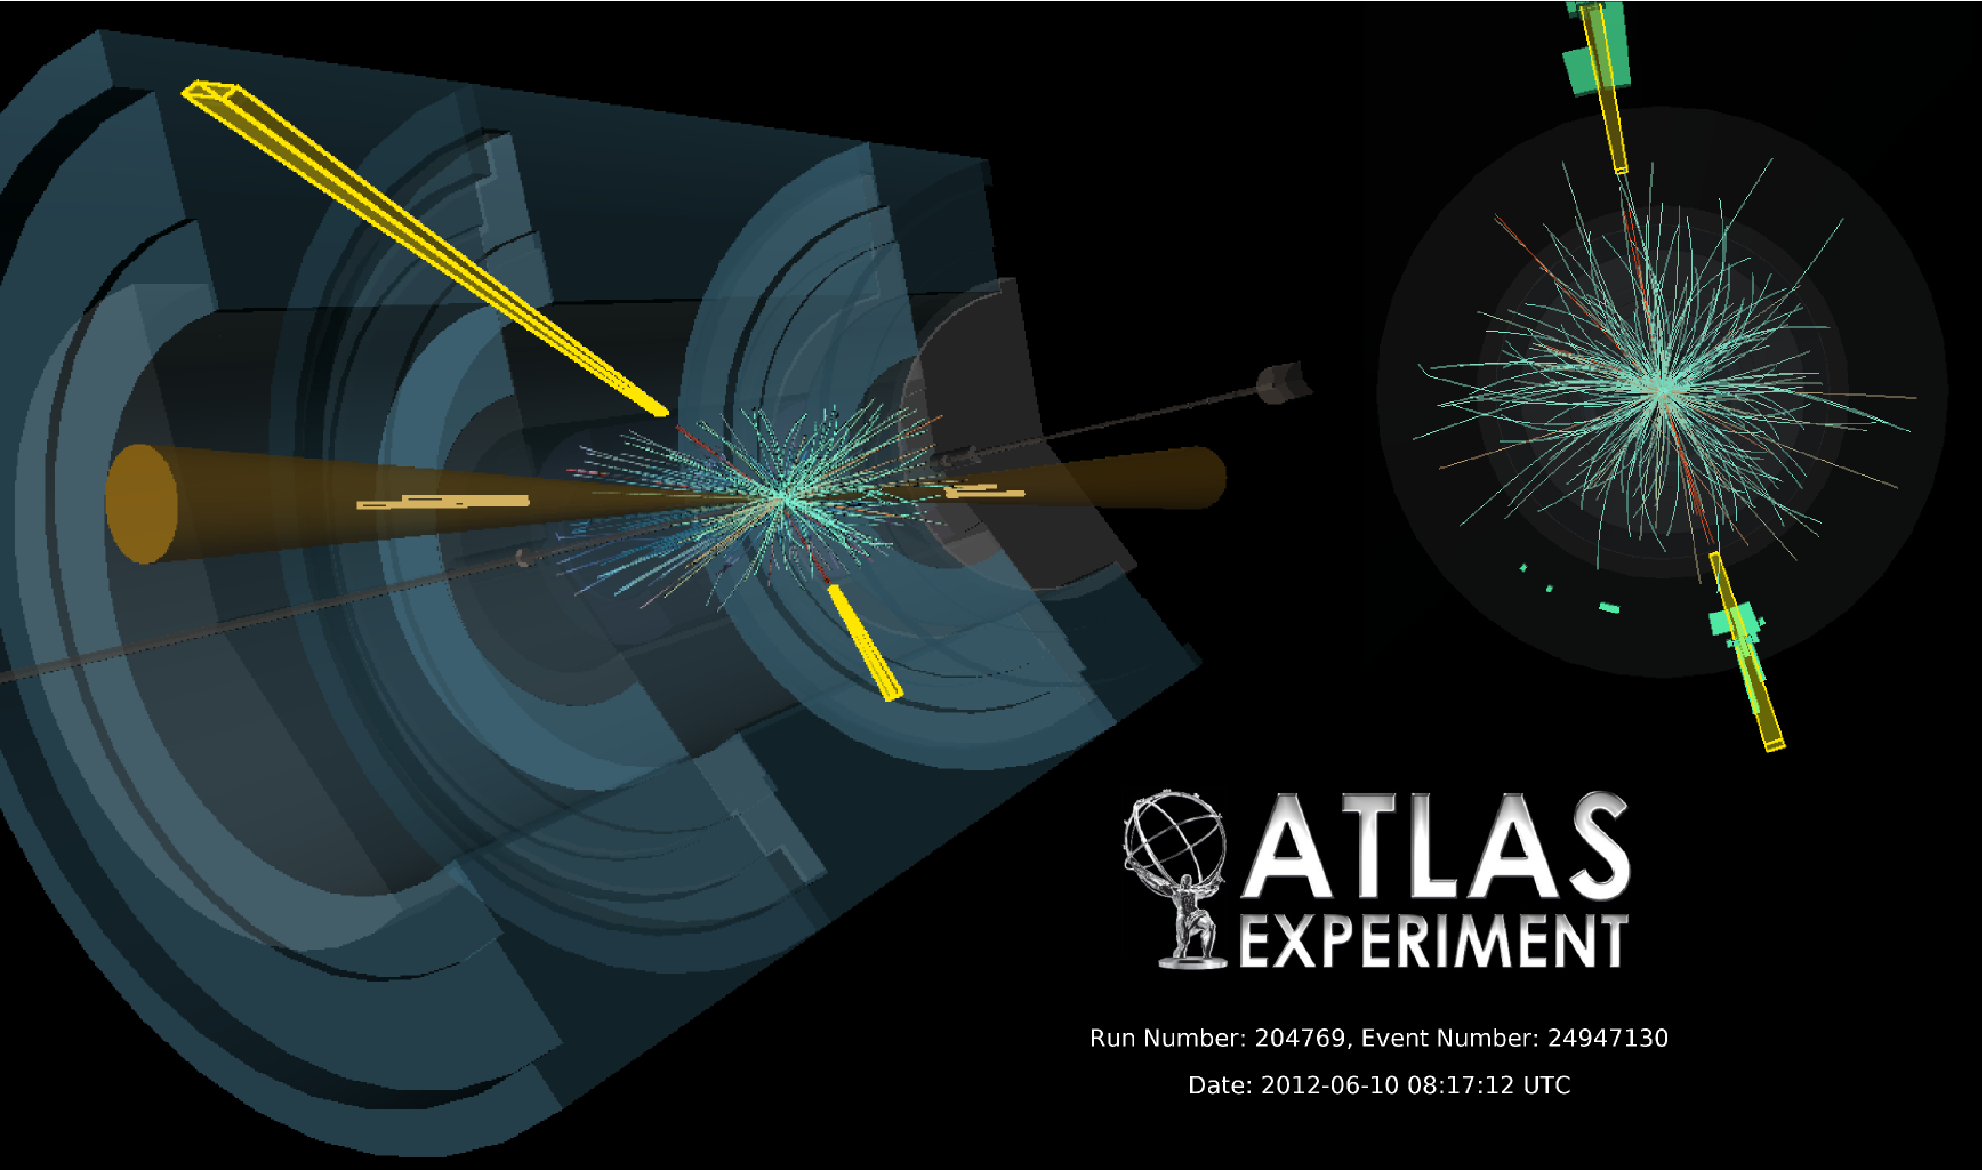 Vector Boson Fusion event observed in the Higgs to two photon decay channel. The signature of these events is two Jets (brown cones) and two photons (yellow boxes), both detected by their showers in the calorimeters.